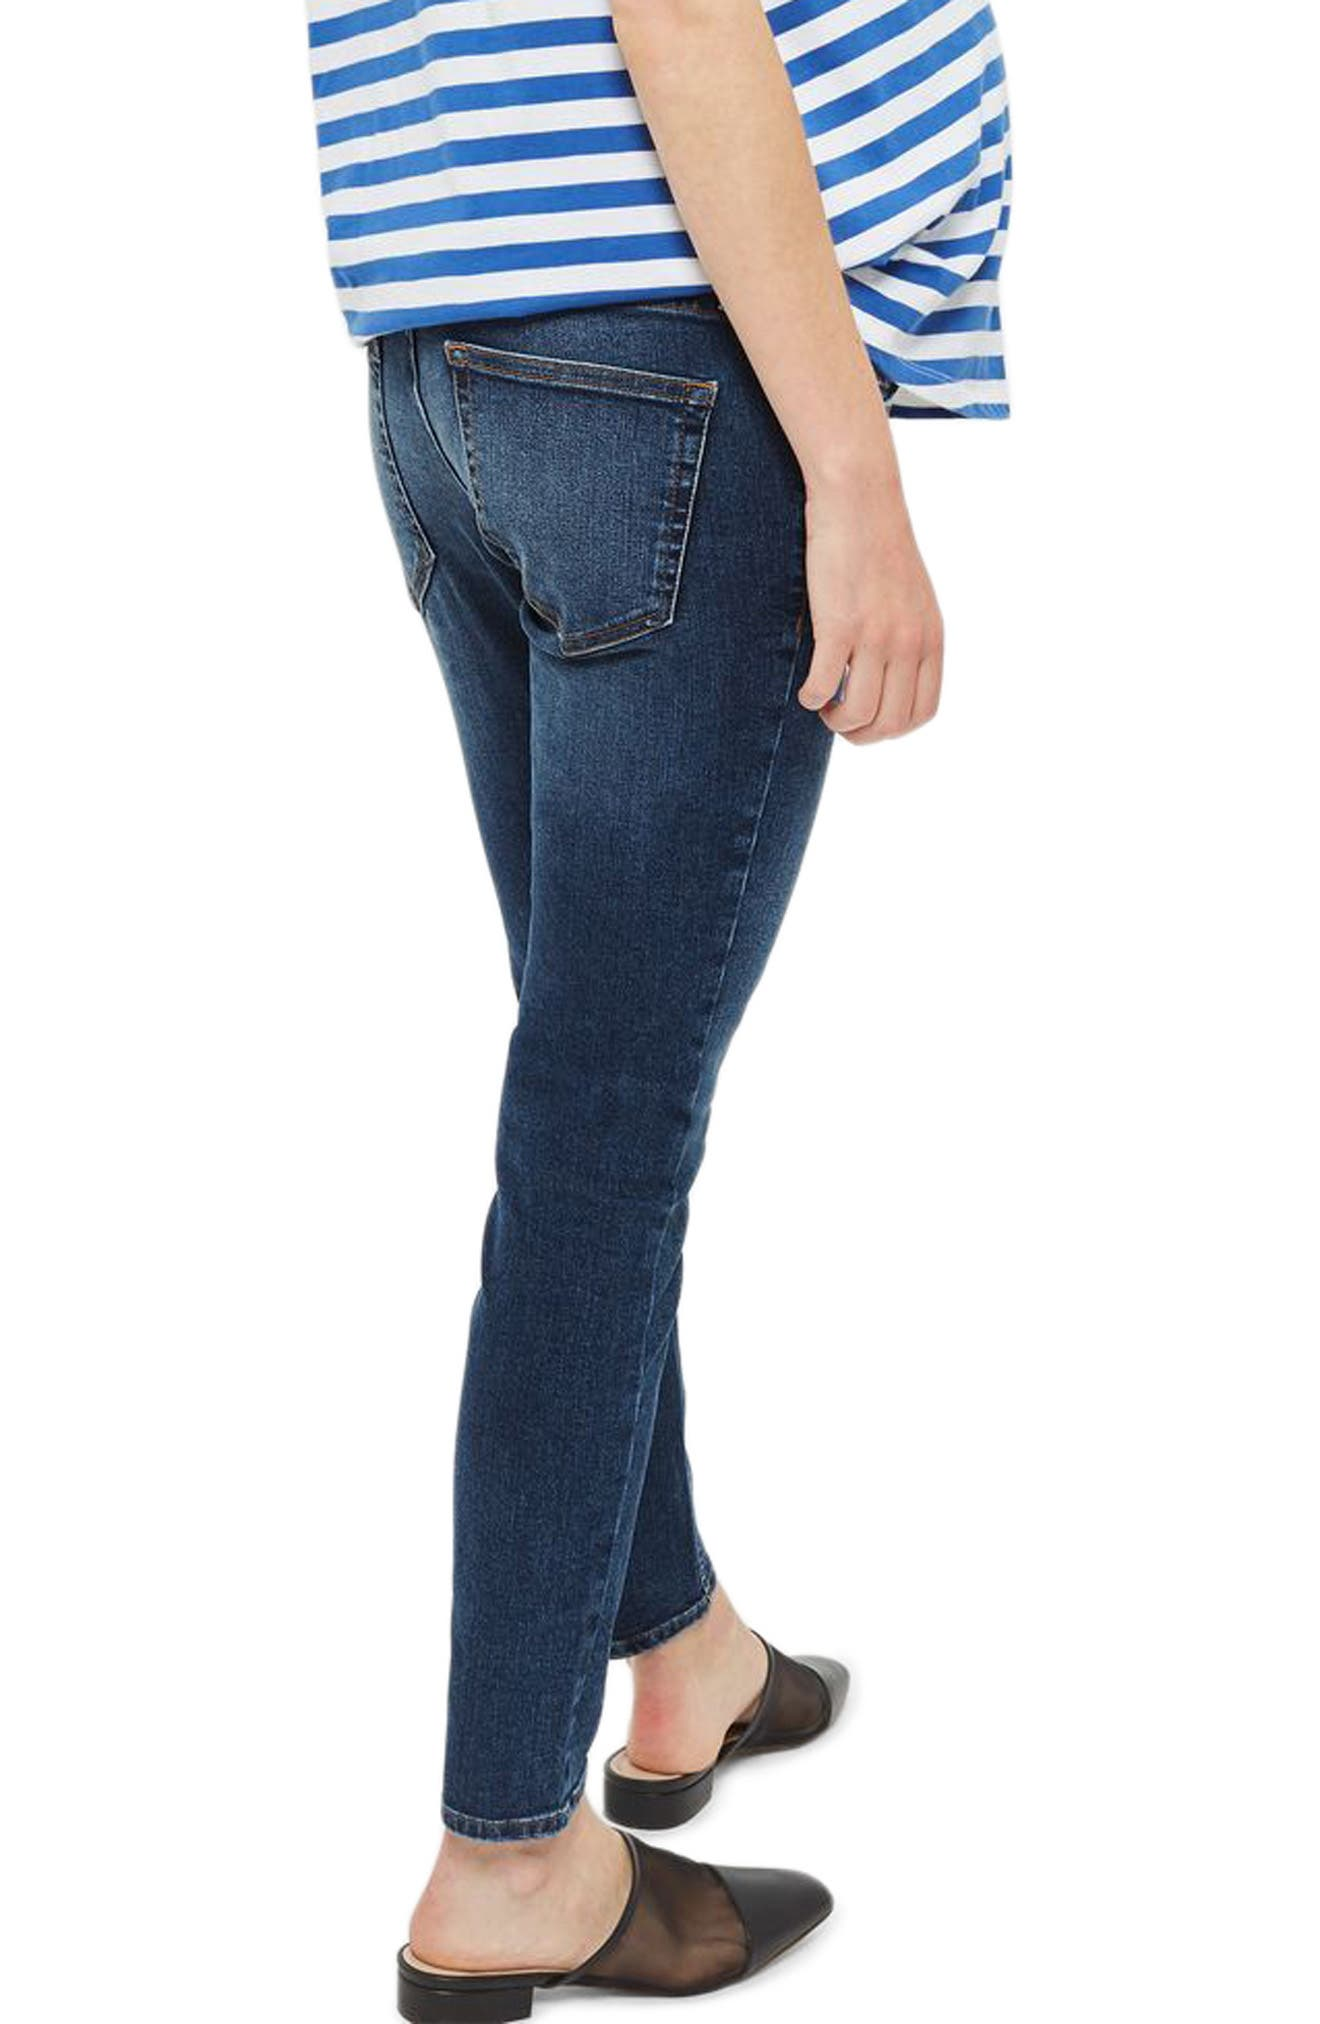 Jamie Over the Bump Maternity Skinny Jeans,                             Alternate thumbnail 2, color,                             Mid Denim